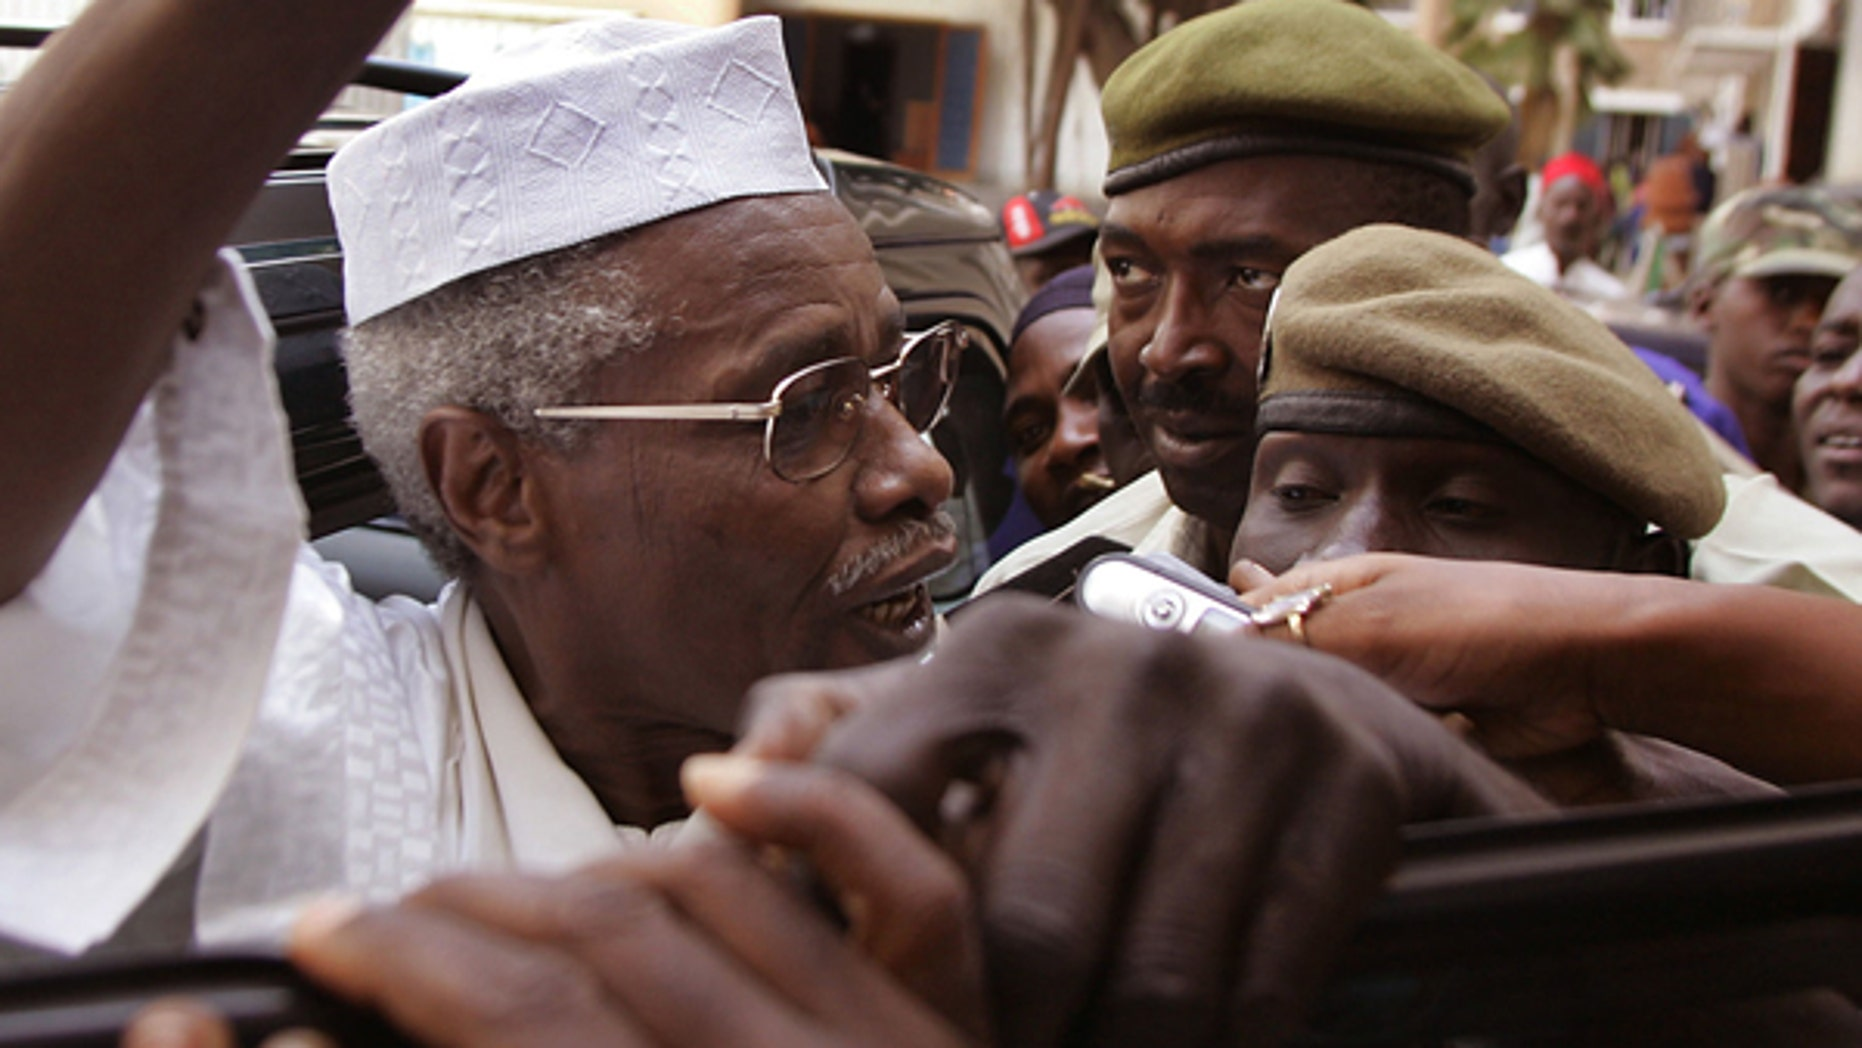 In this Friday, Nov. 25, 2005, file photo,  Former Chad dictator Hissene Habre, left,  seen as he leaves the court in Dakar, Senegal. A French lawyer for ex-Chadian dictator Hissene Habre confirms he has been charged with war crimes, crimes against humanity and torture by a special court set up in Senegal to try him.